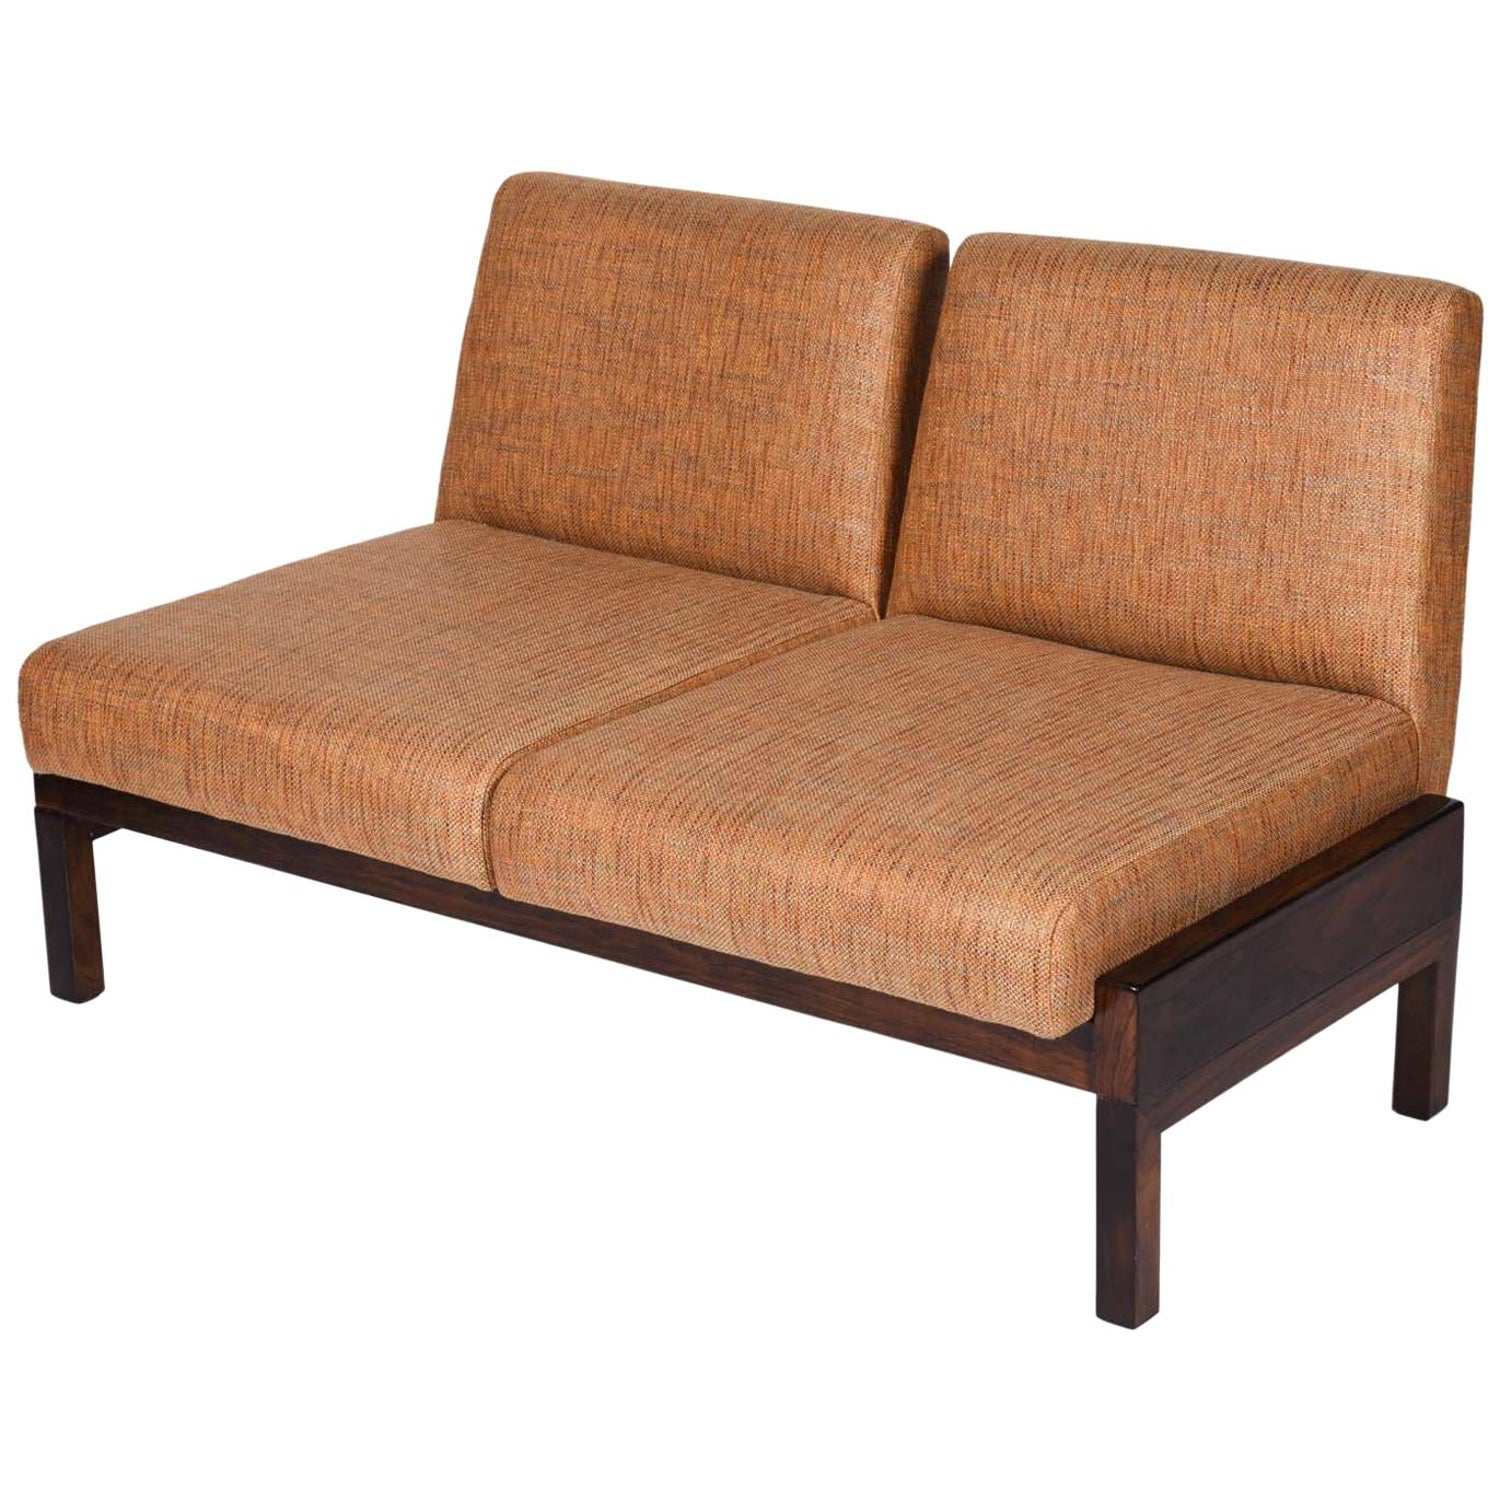 2-Seat sofa Midcentury Brazilian Center Table, 1960´s For Sale at ...